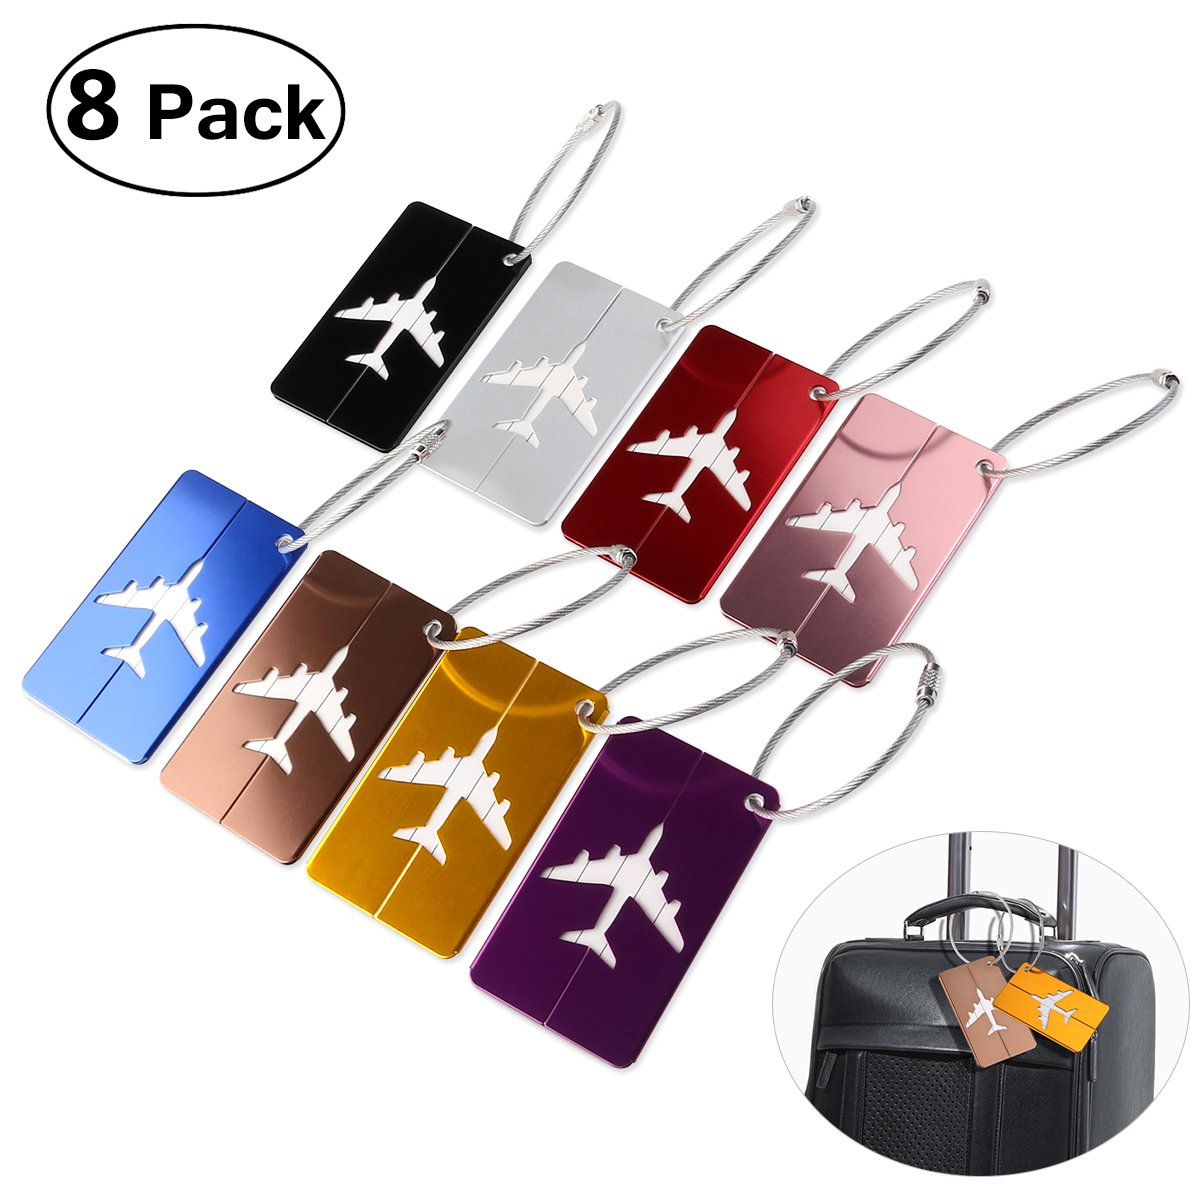 PIXNOR Metal Travel Luggage Tags Suitcase Tags with Strings Pack of 8 22052